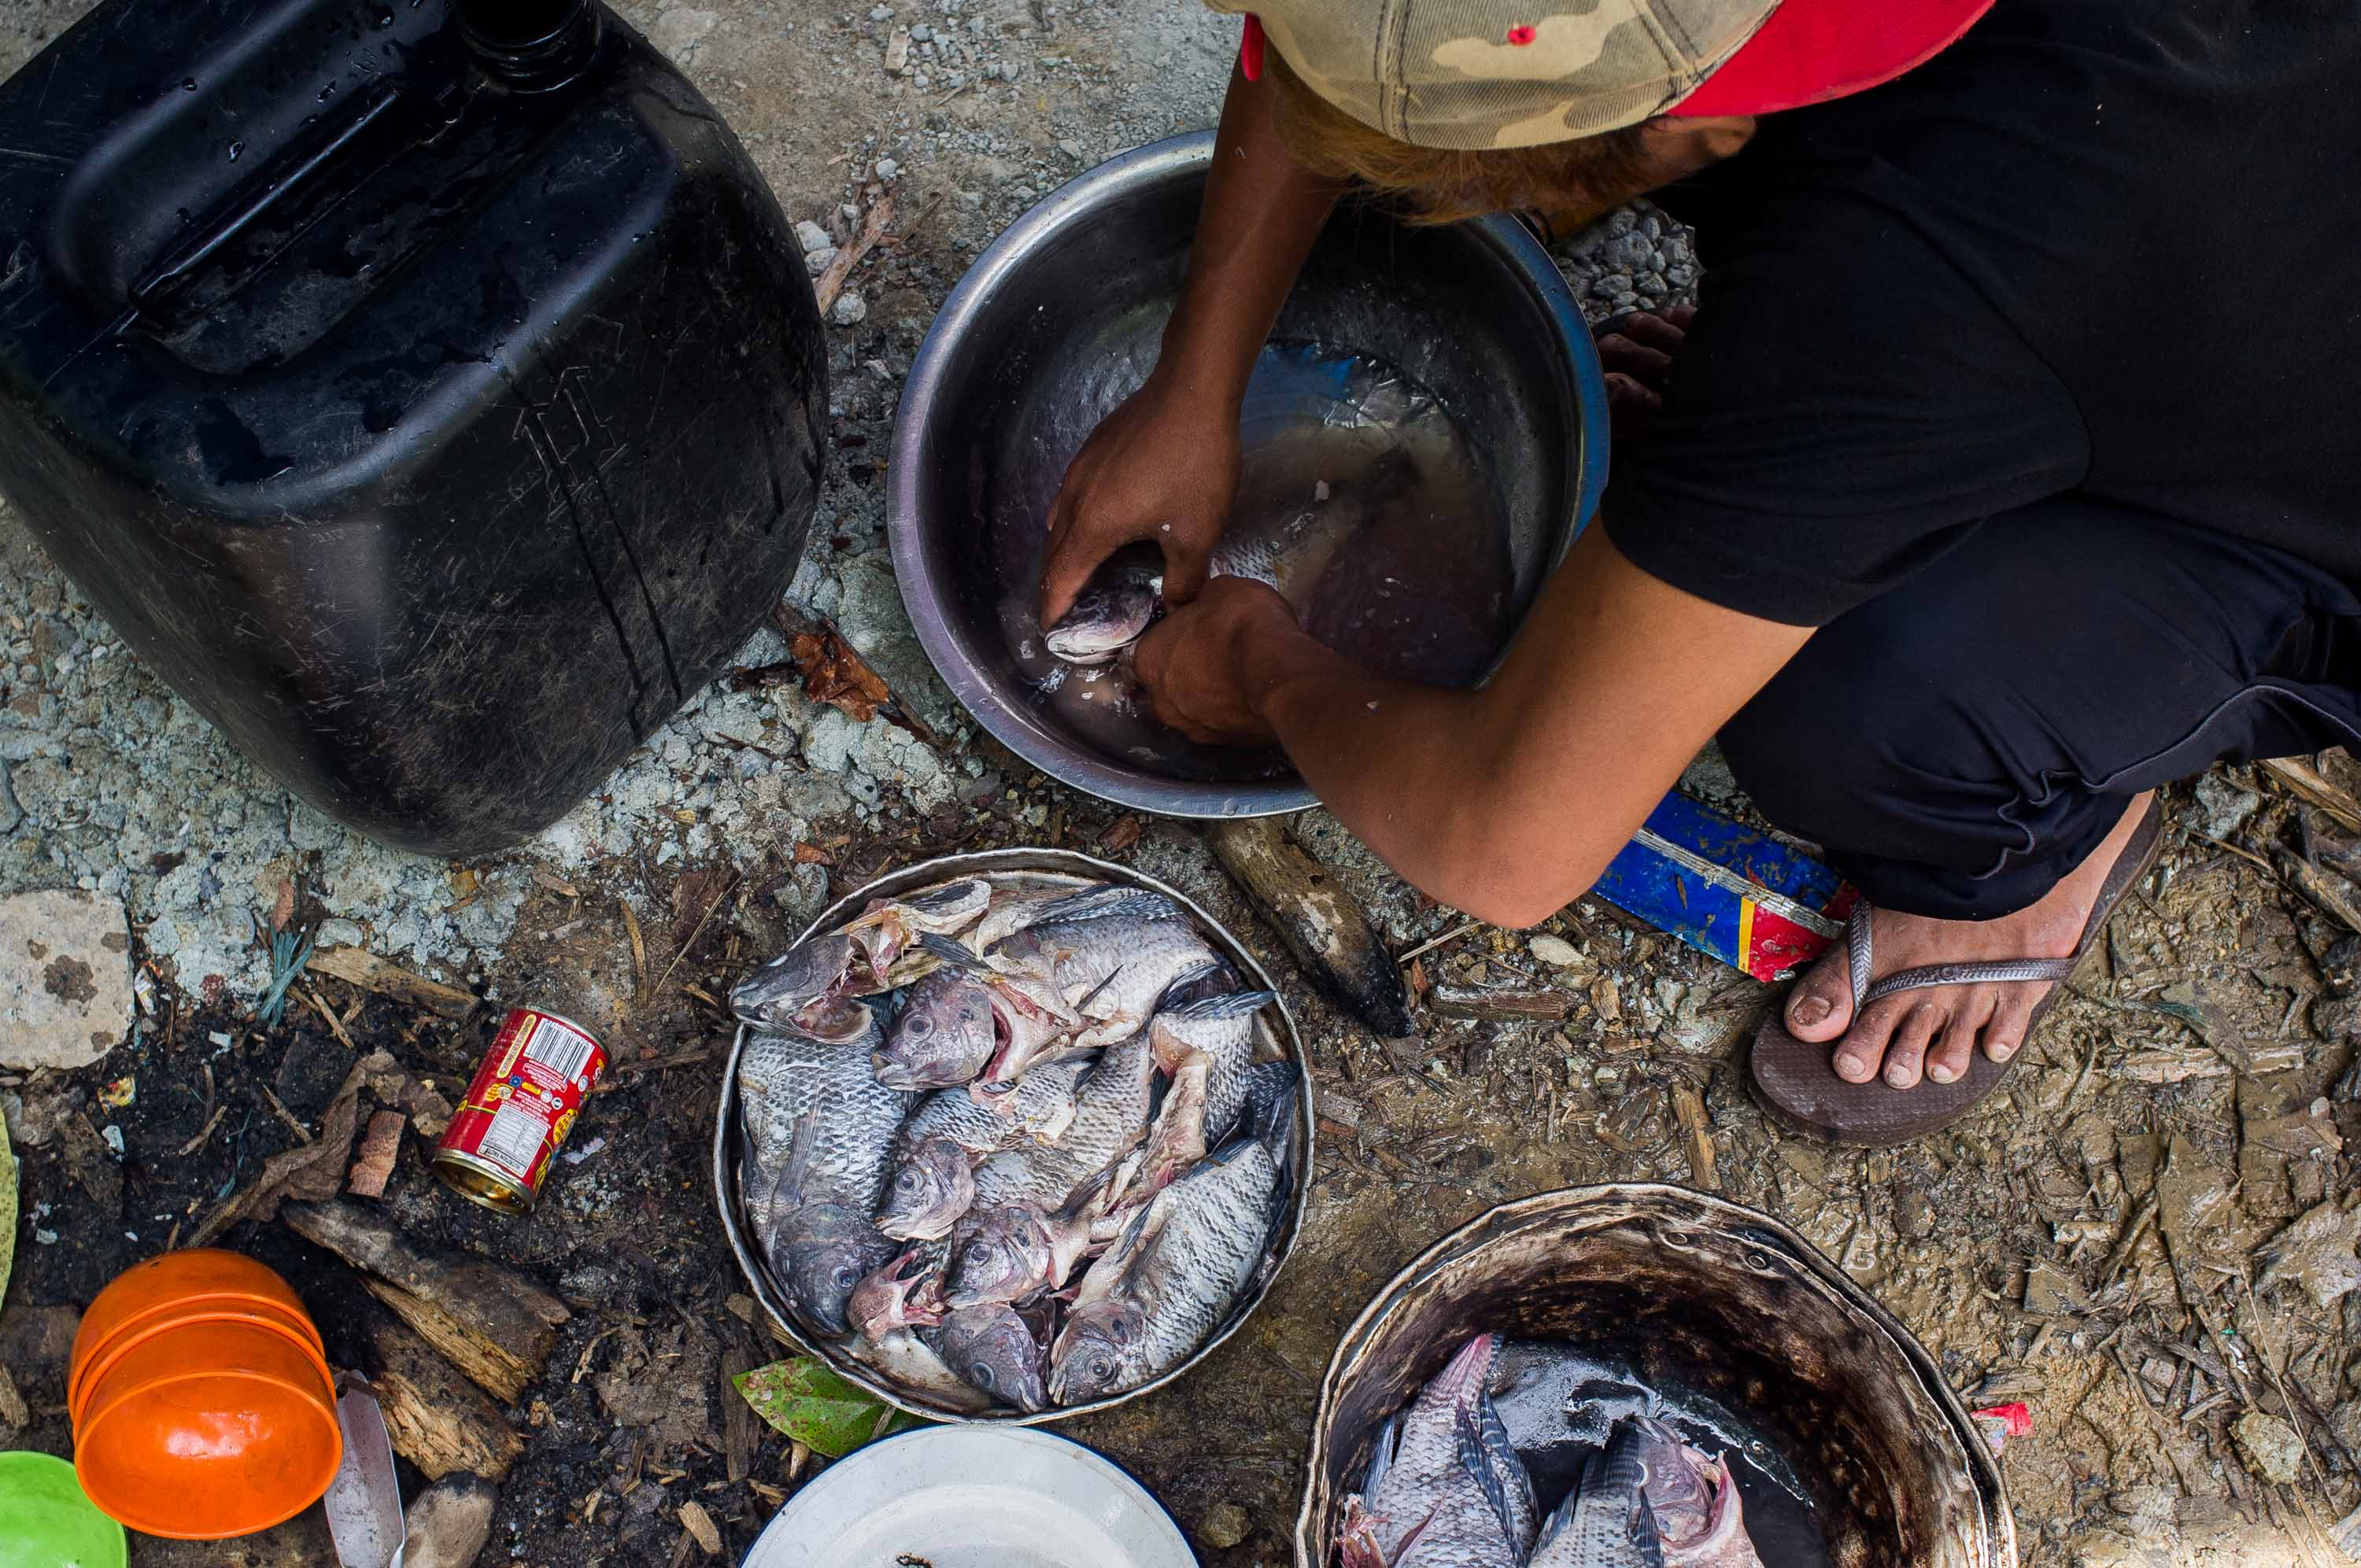 A boy prepares fish caught at the Pasig river for cooking. This photo by Mark Saludes is a finalist in the Most Outstanding Photograph category.